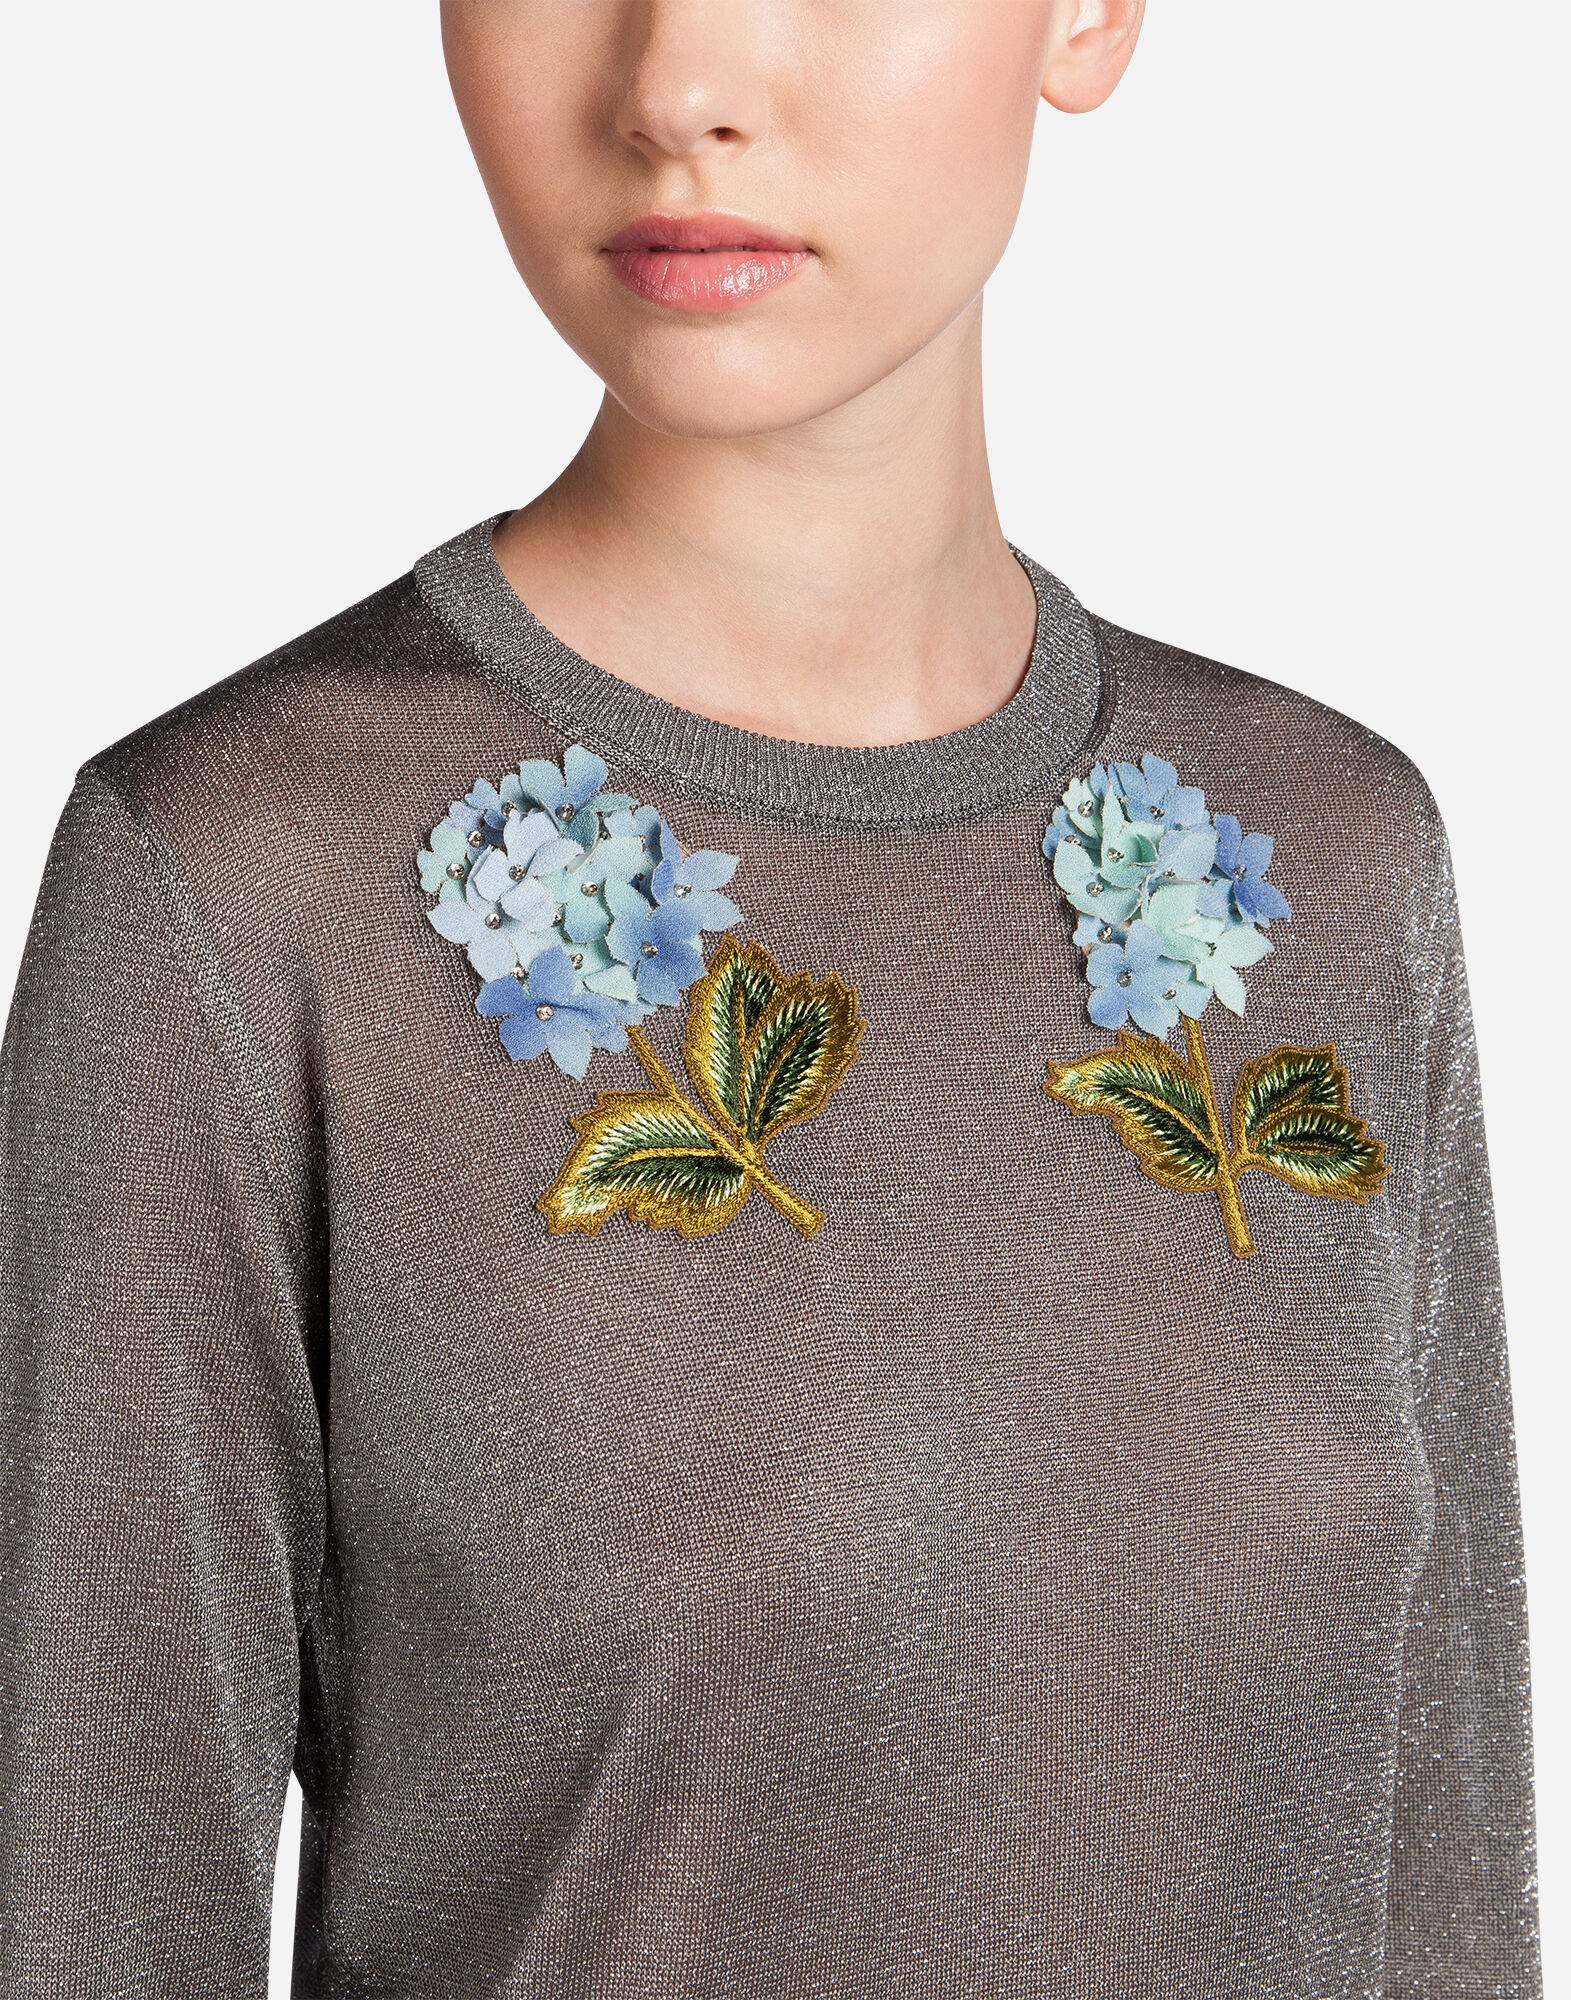 SWEATSHIRT IN LUREX WITH EMBROIDERY